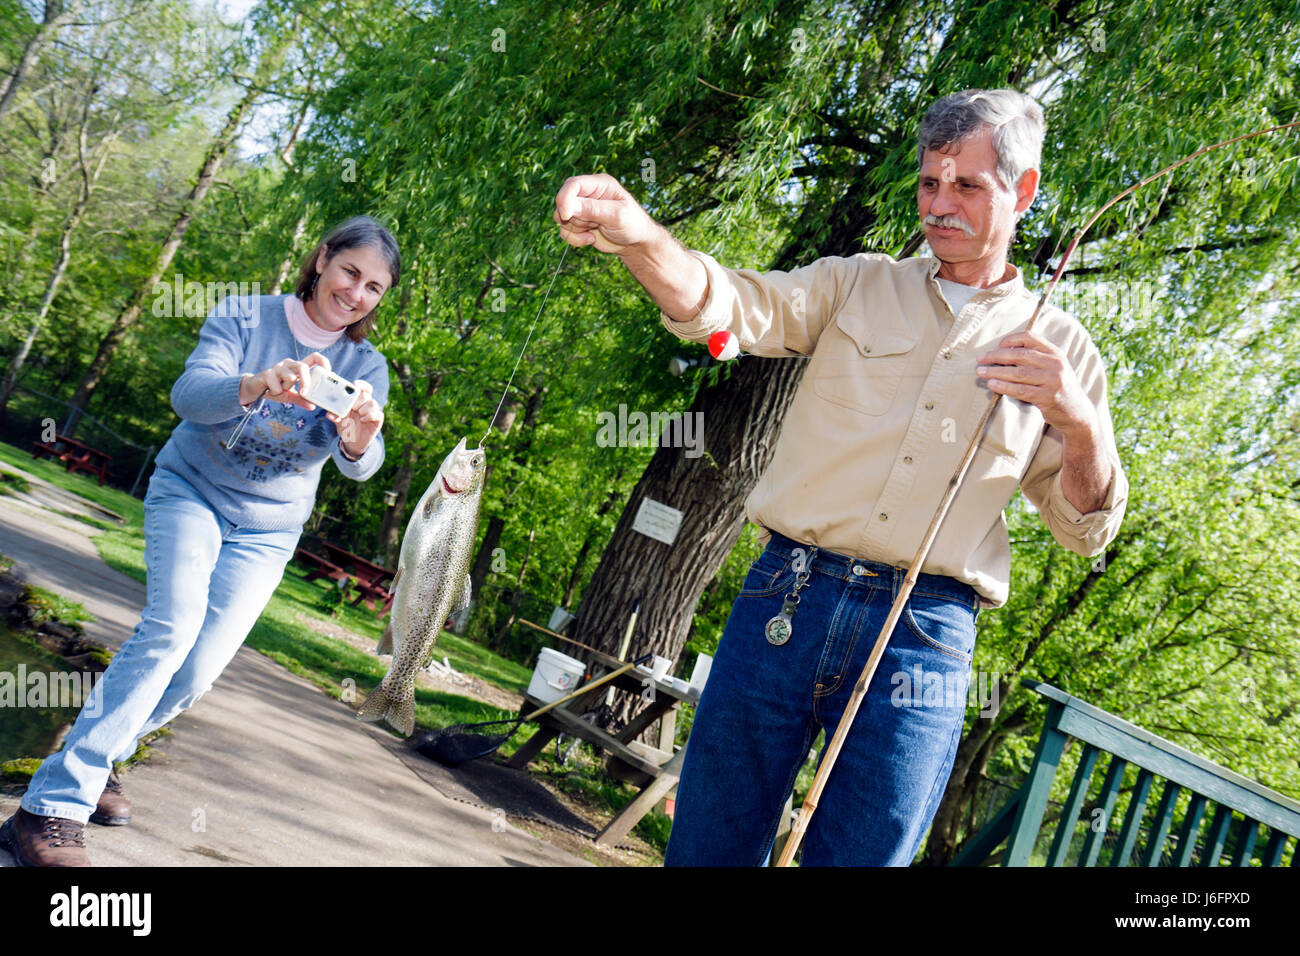 Women trout fishing stock photos women trout fishing stock images alamy - Trout farming business family mountains ...